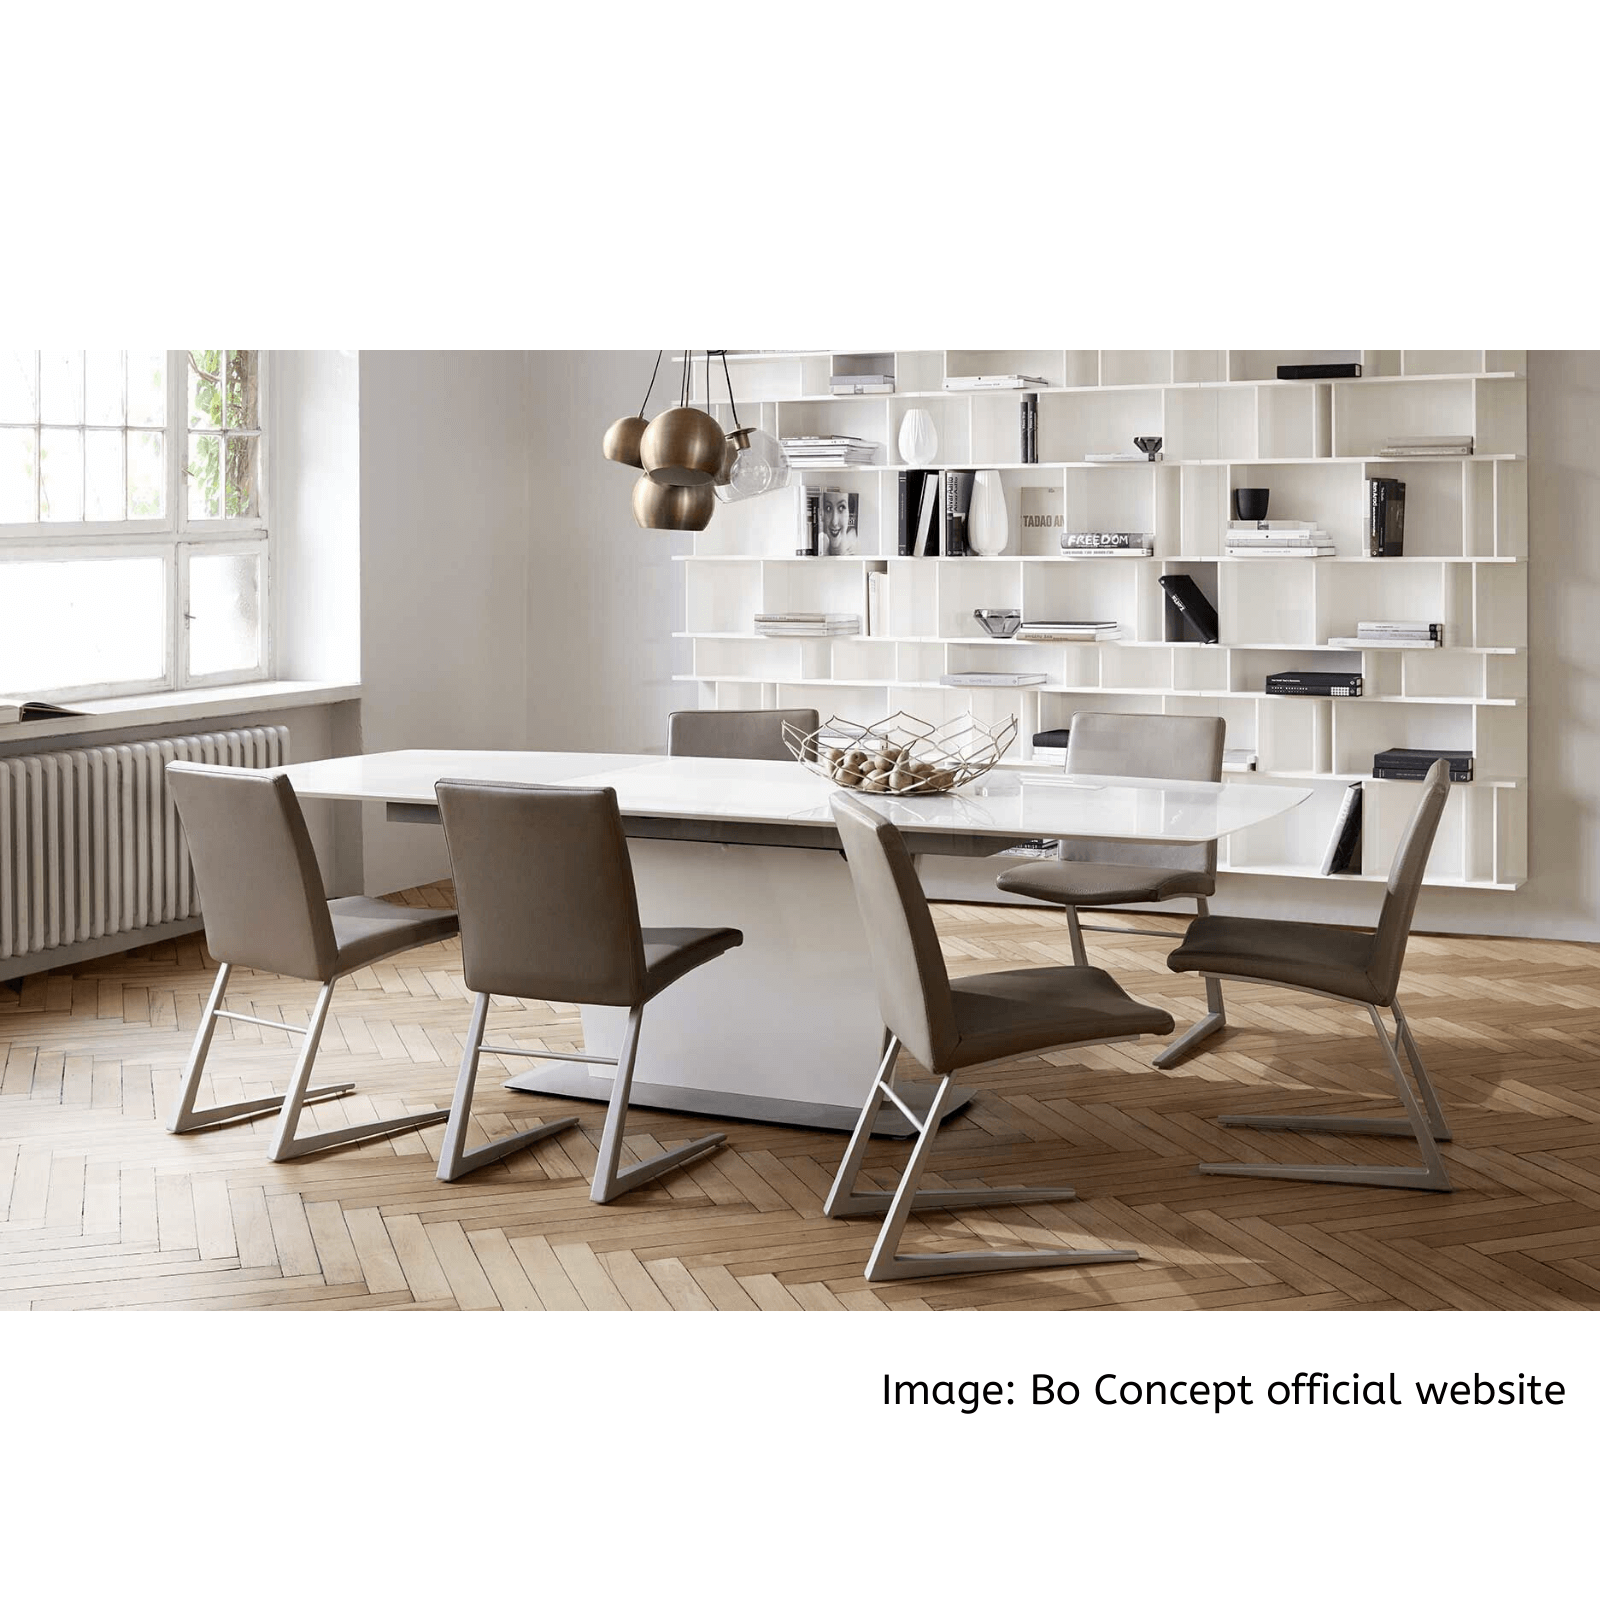 Bo Concept Mariposa dining chair taupe and Milano table